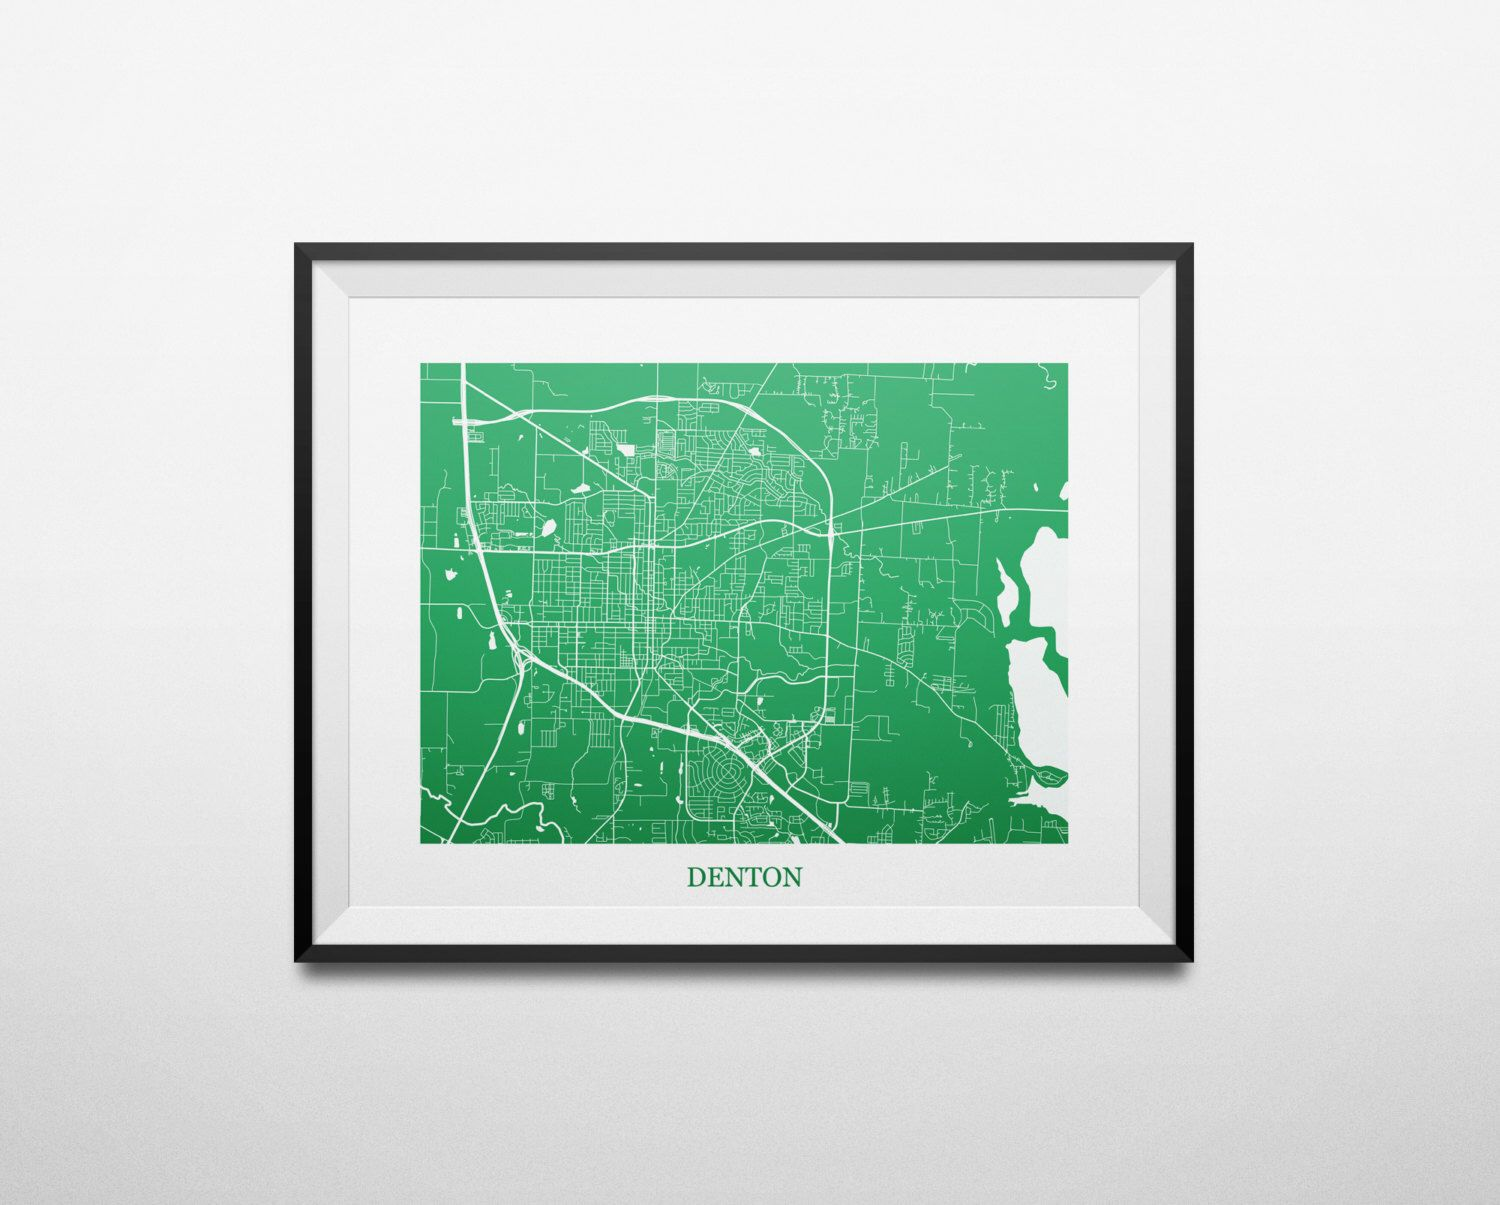 Denton Texas University Of North Abstract Street Map Print By Louisianaprints On Etsy